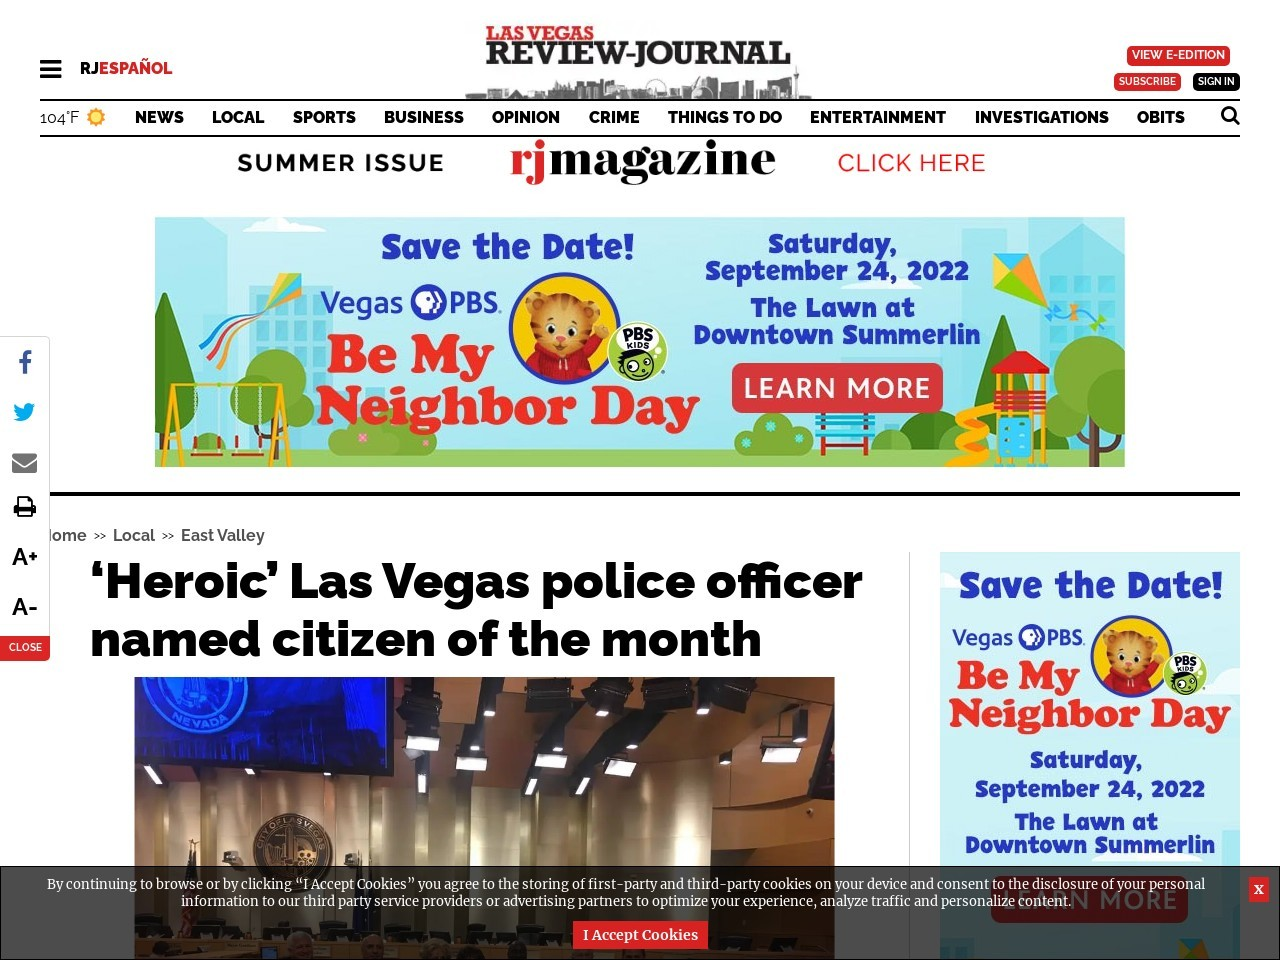 'Heroic' Las Vegas police officer named citizen of the month